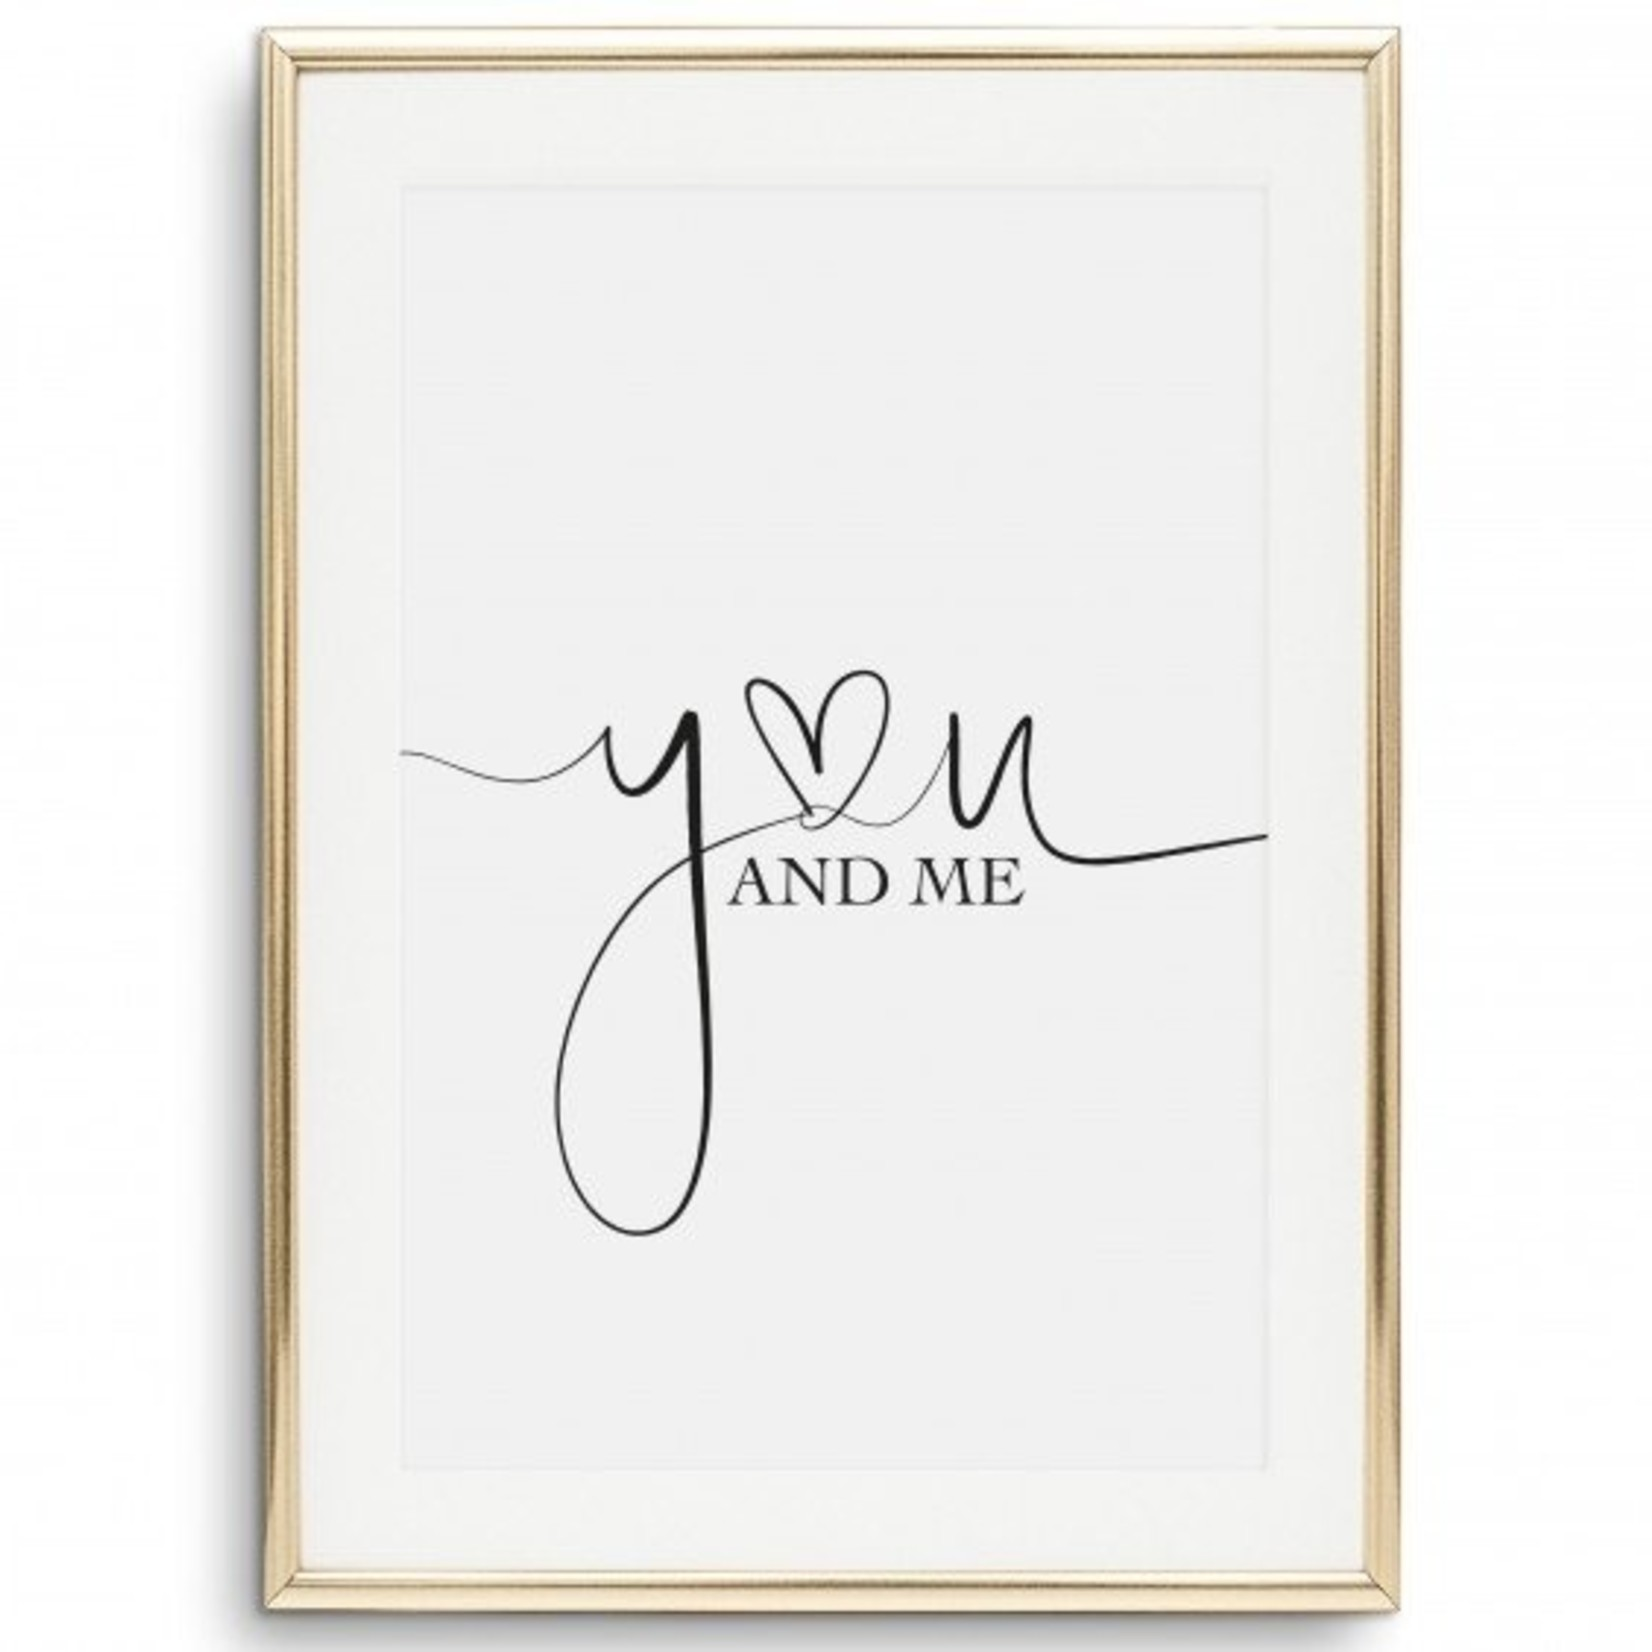 Tales by Jen Poster - You and me - A4 formaat